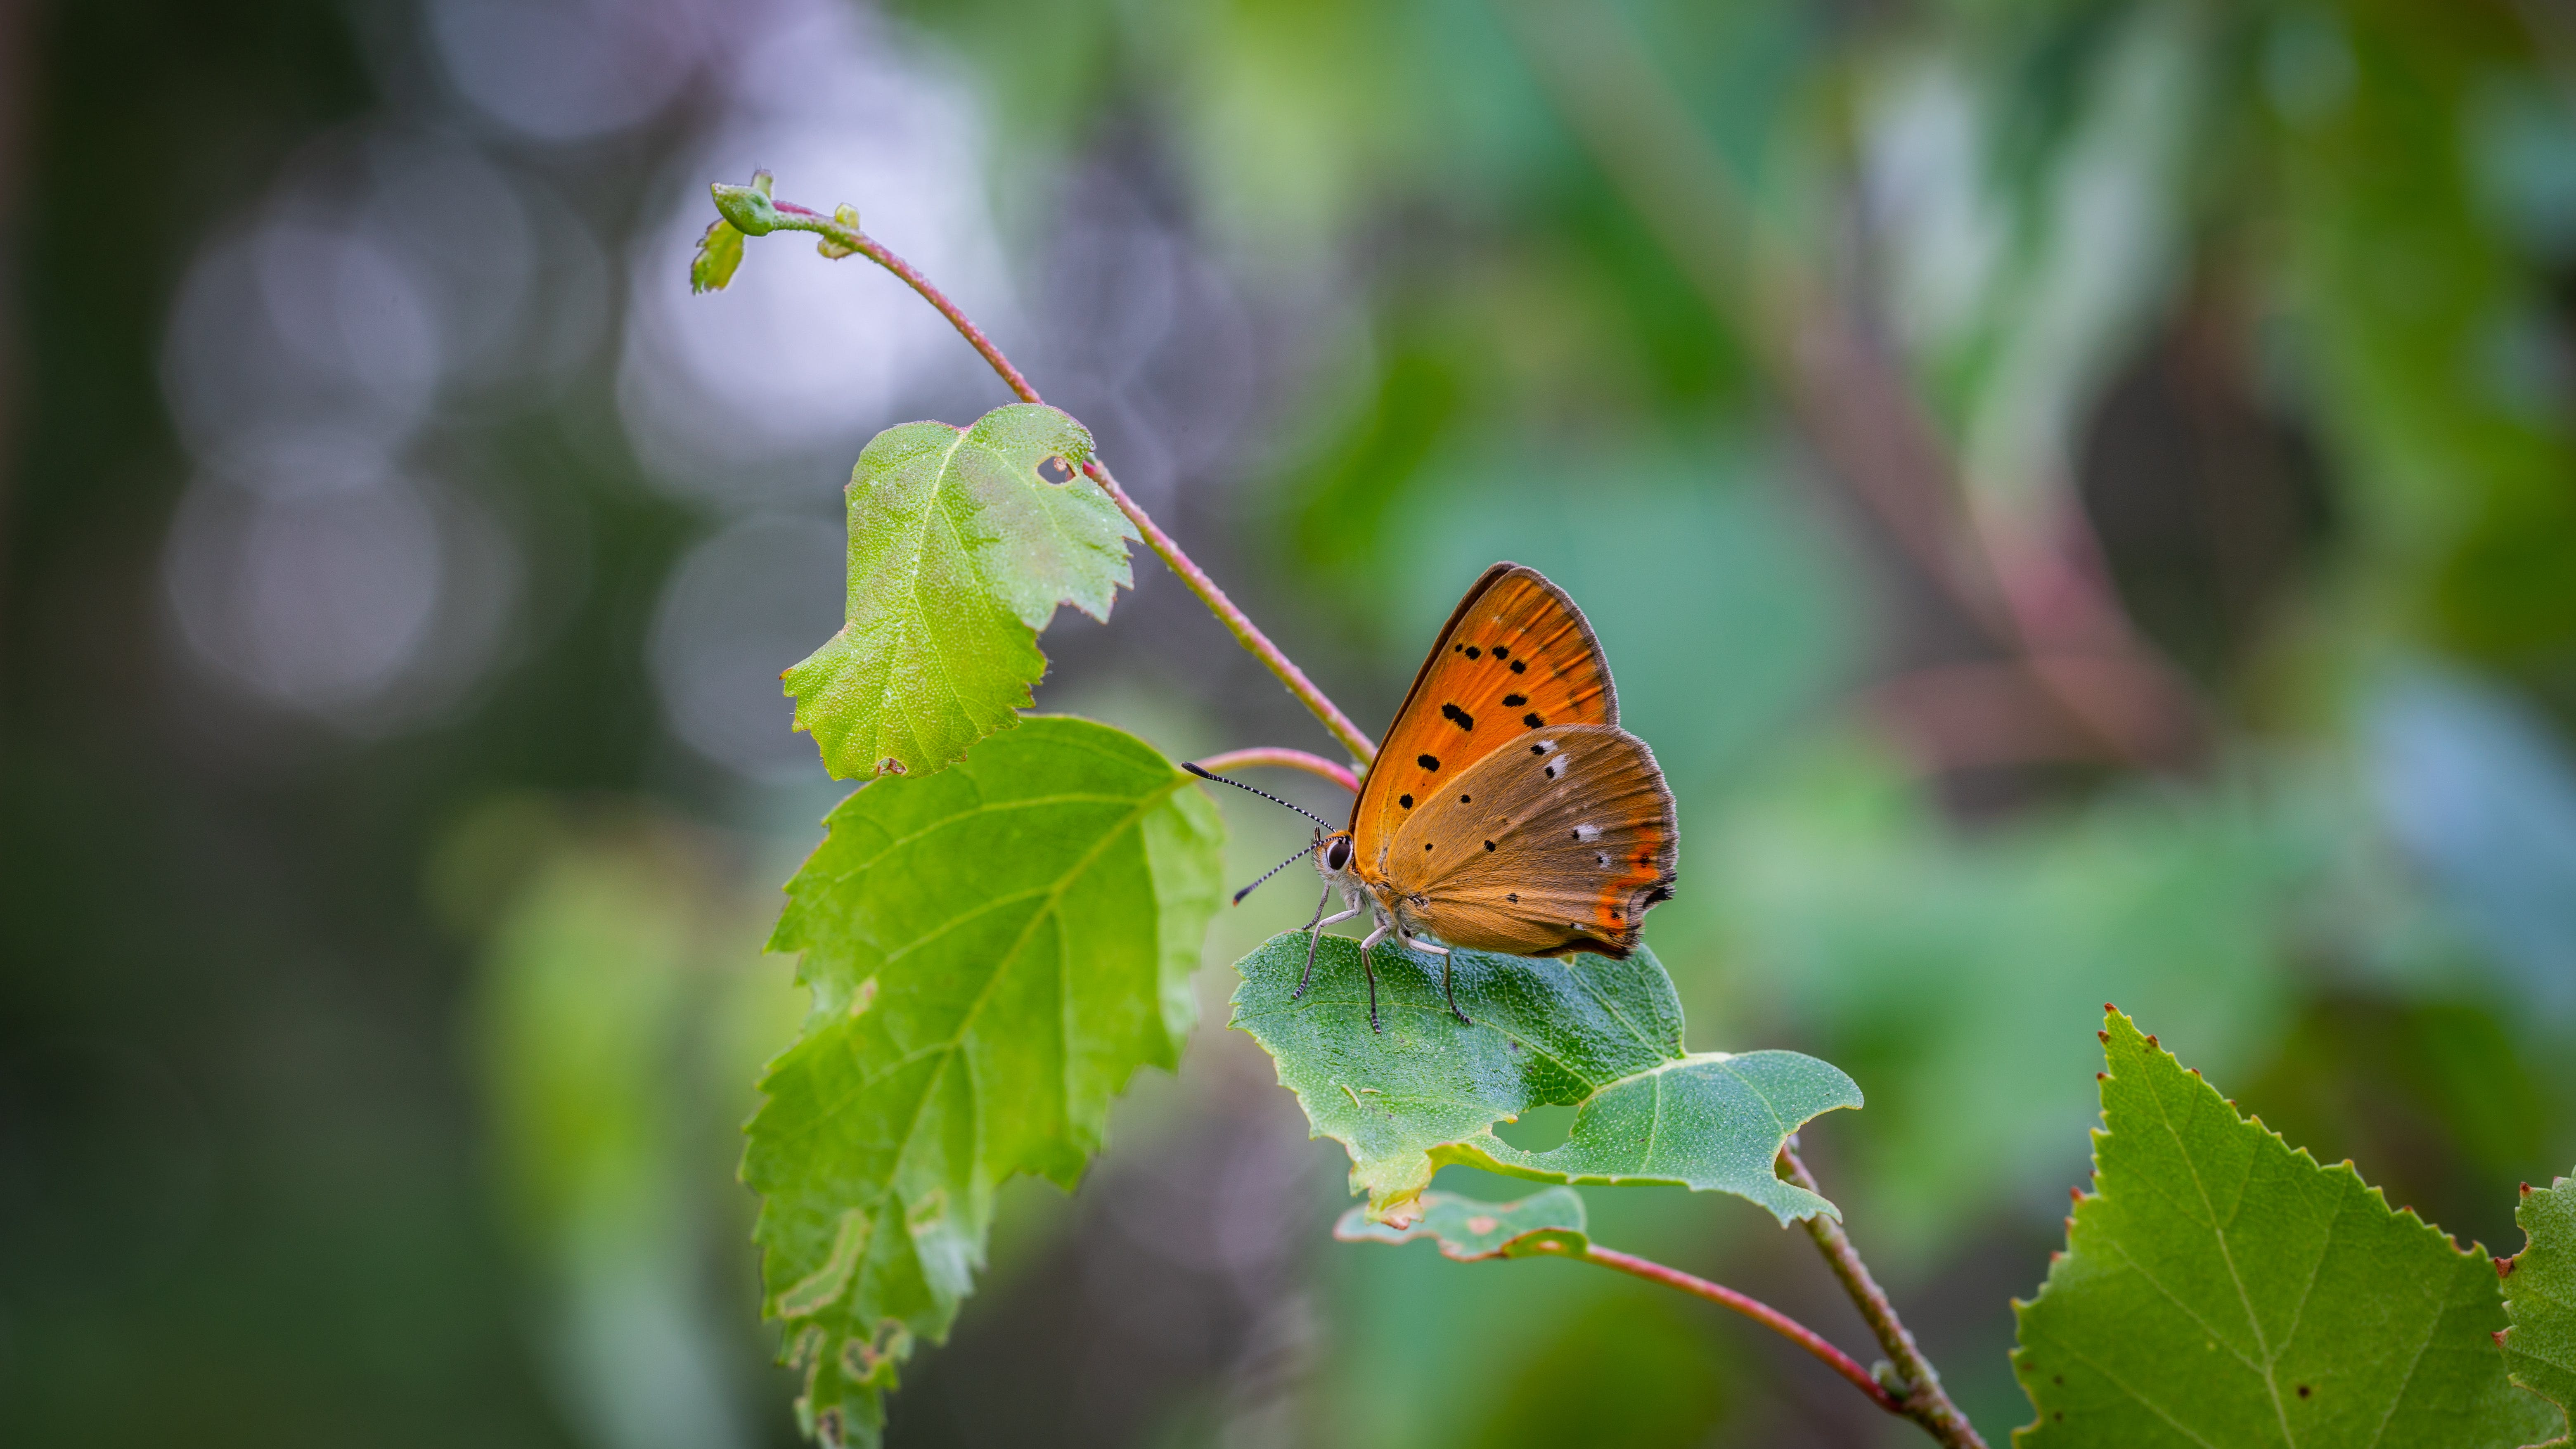 Close-Up Photo of Butterfly Perched On Leaf